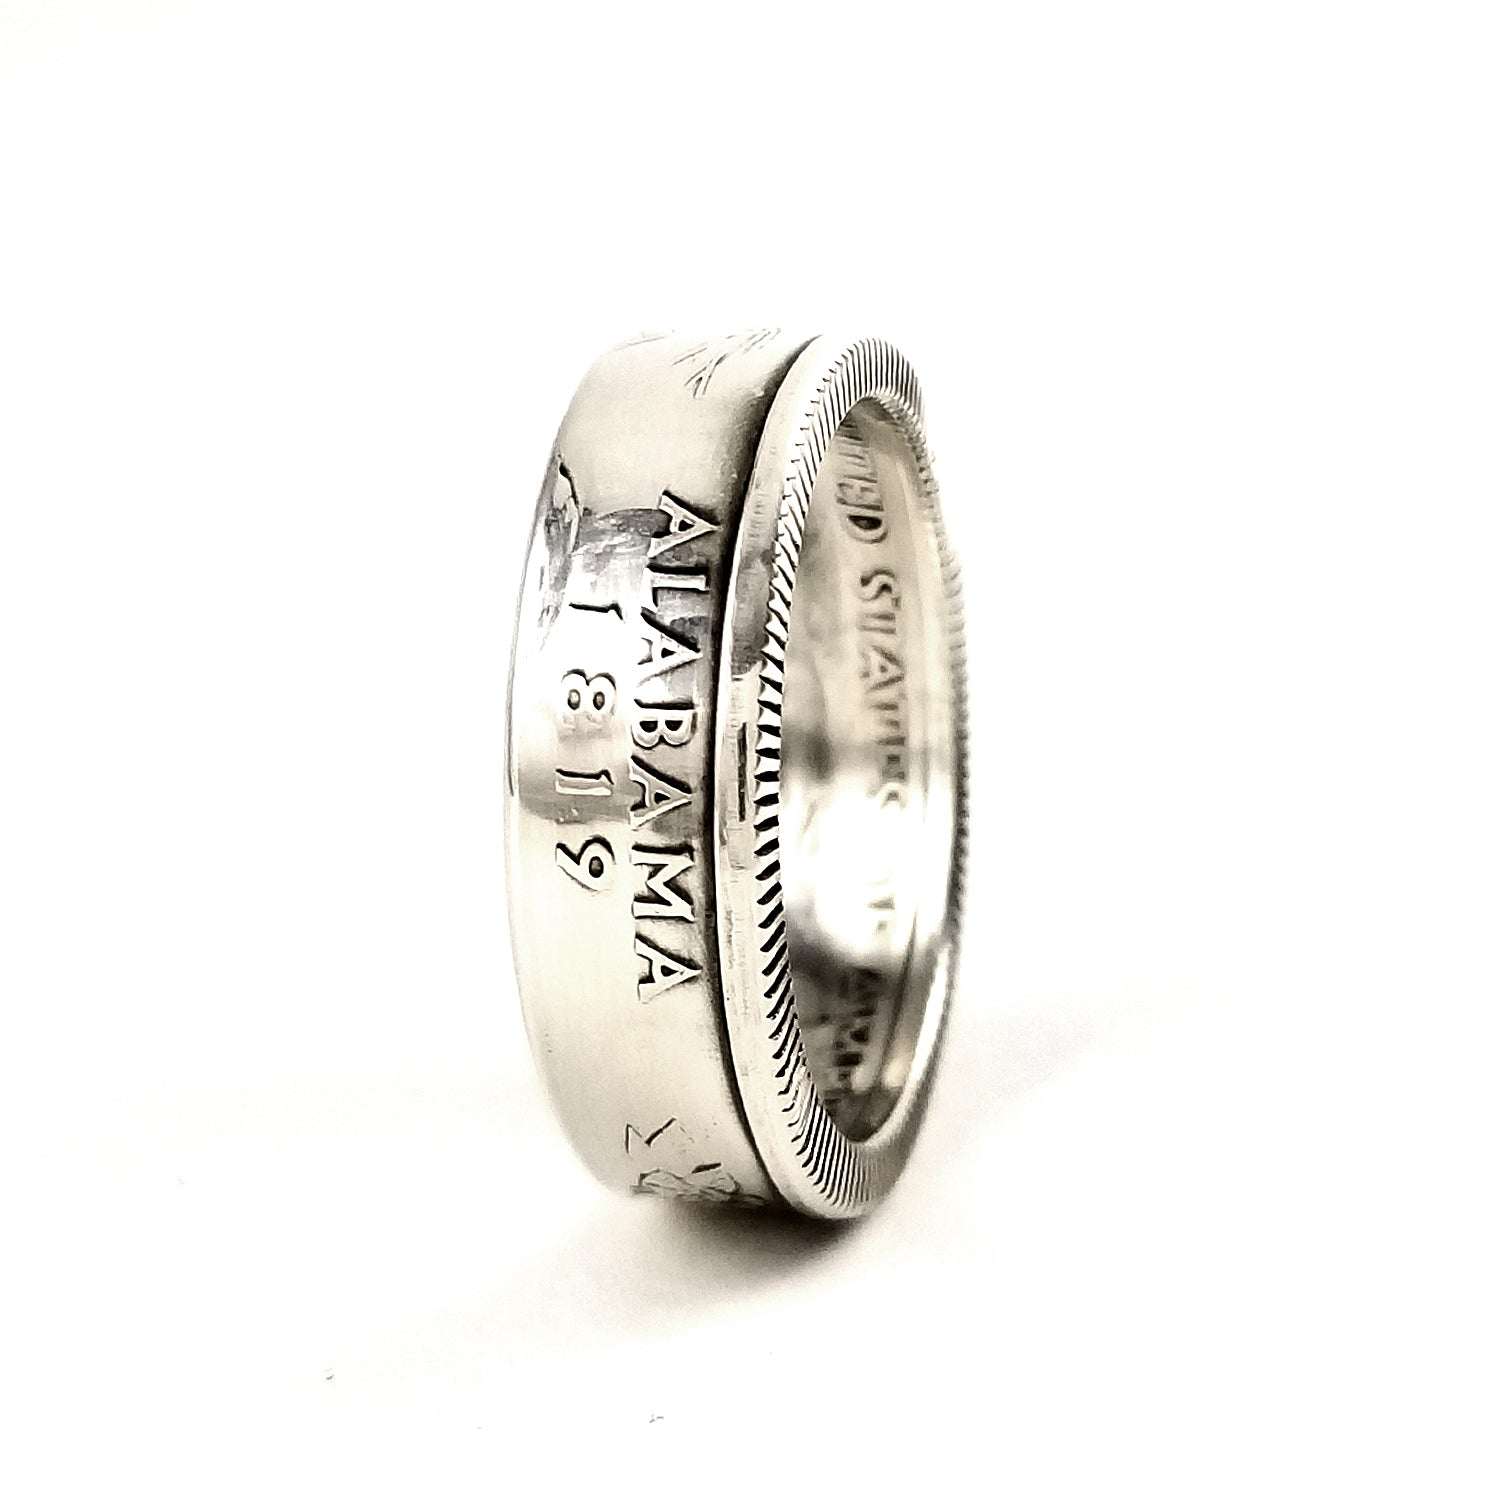 ALABAMA SILVER PROOF US STATE QUARTER COIN RING  SIZE 4-11